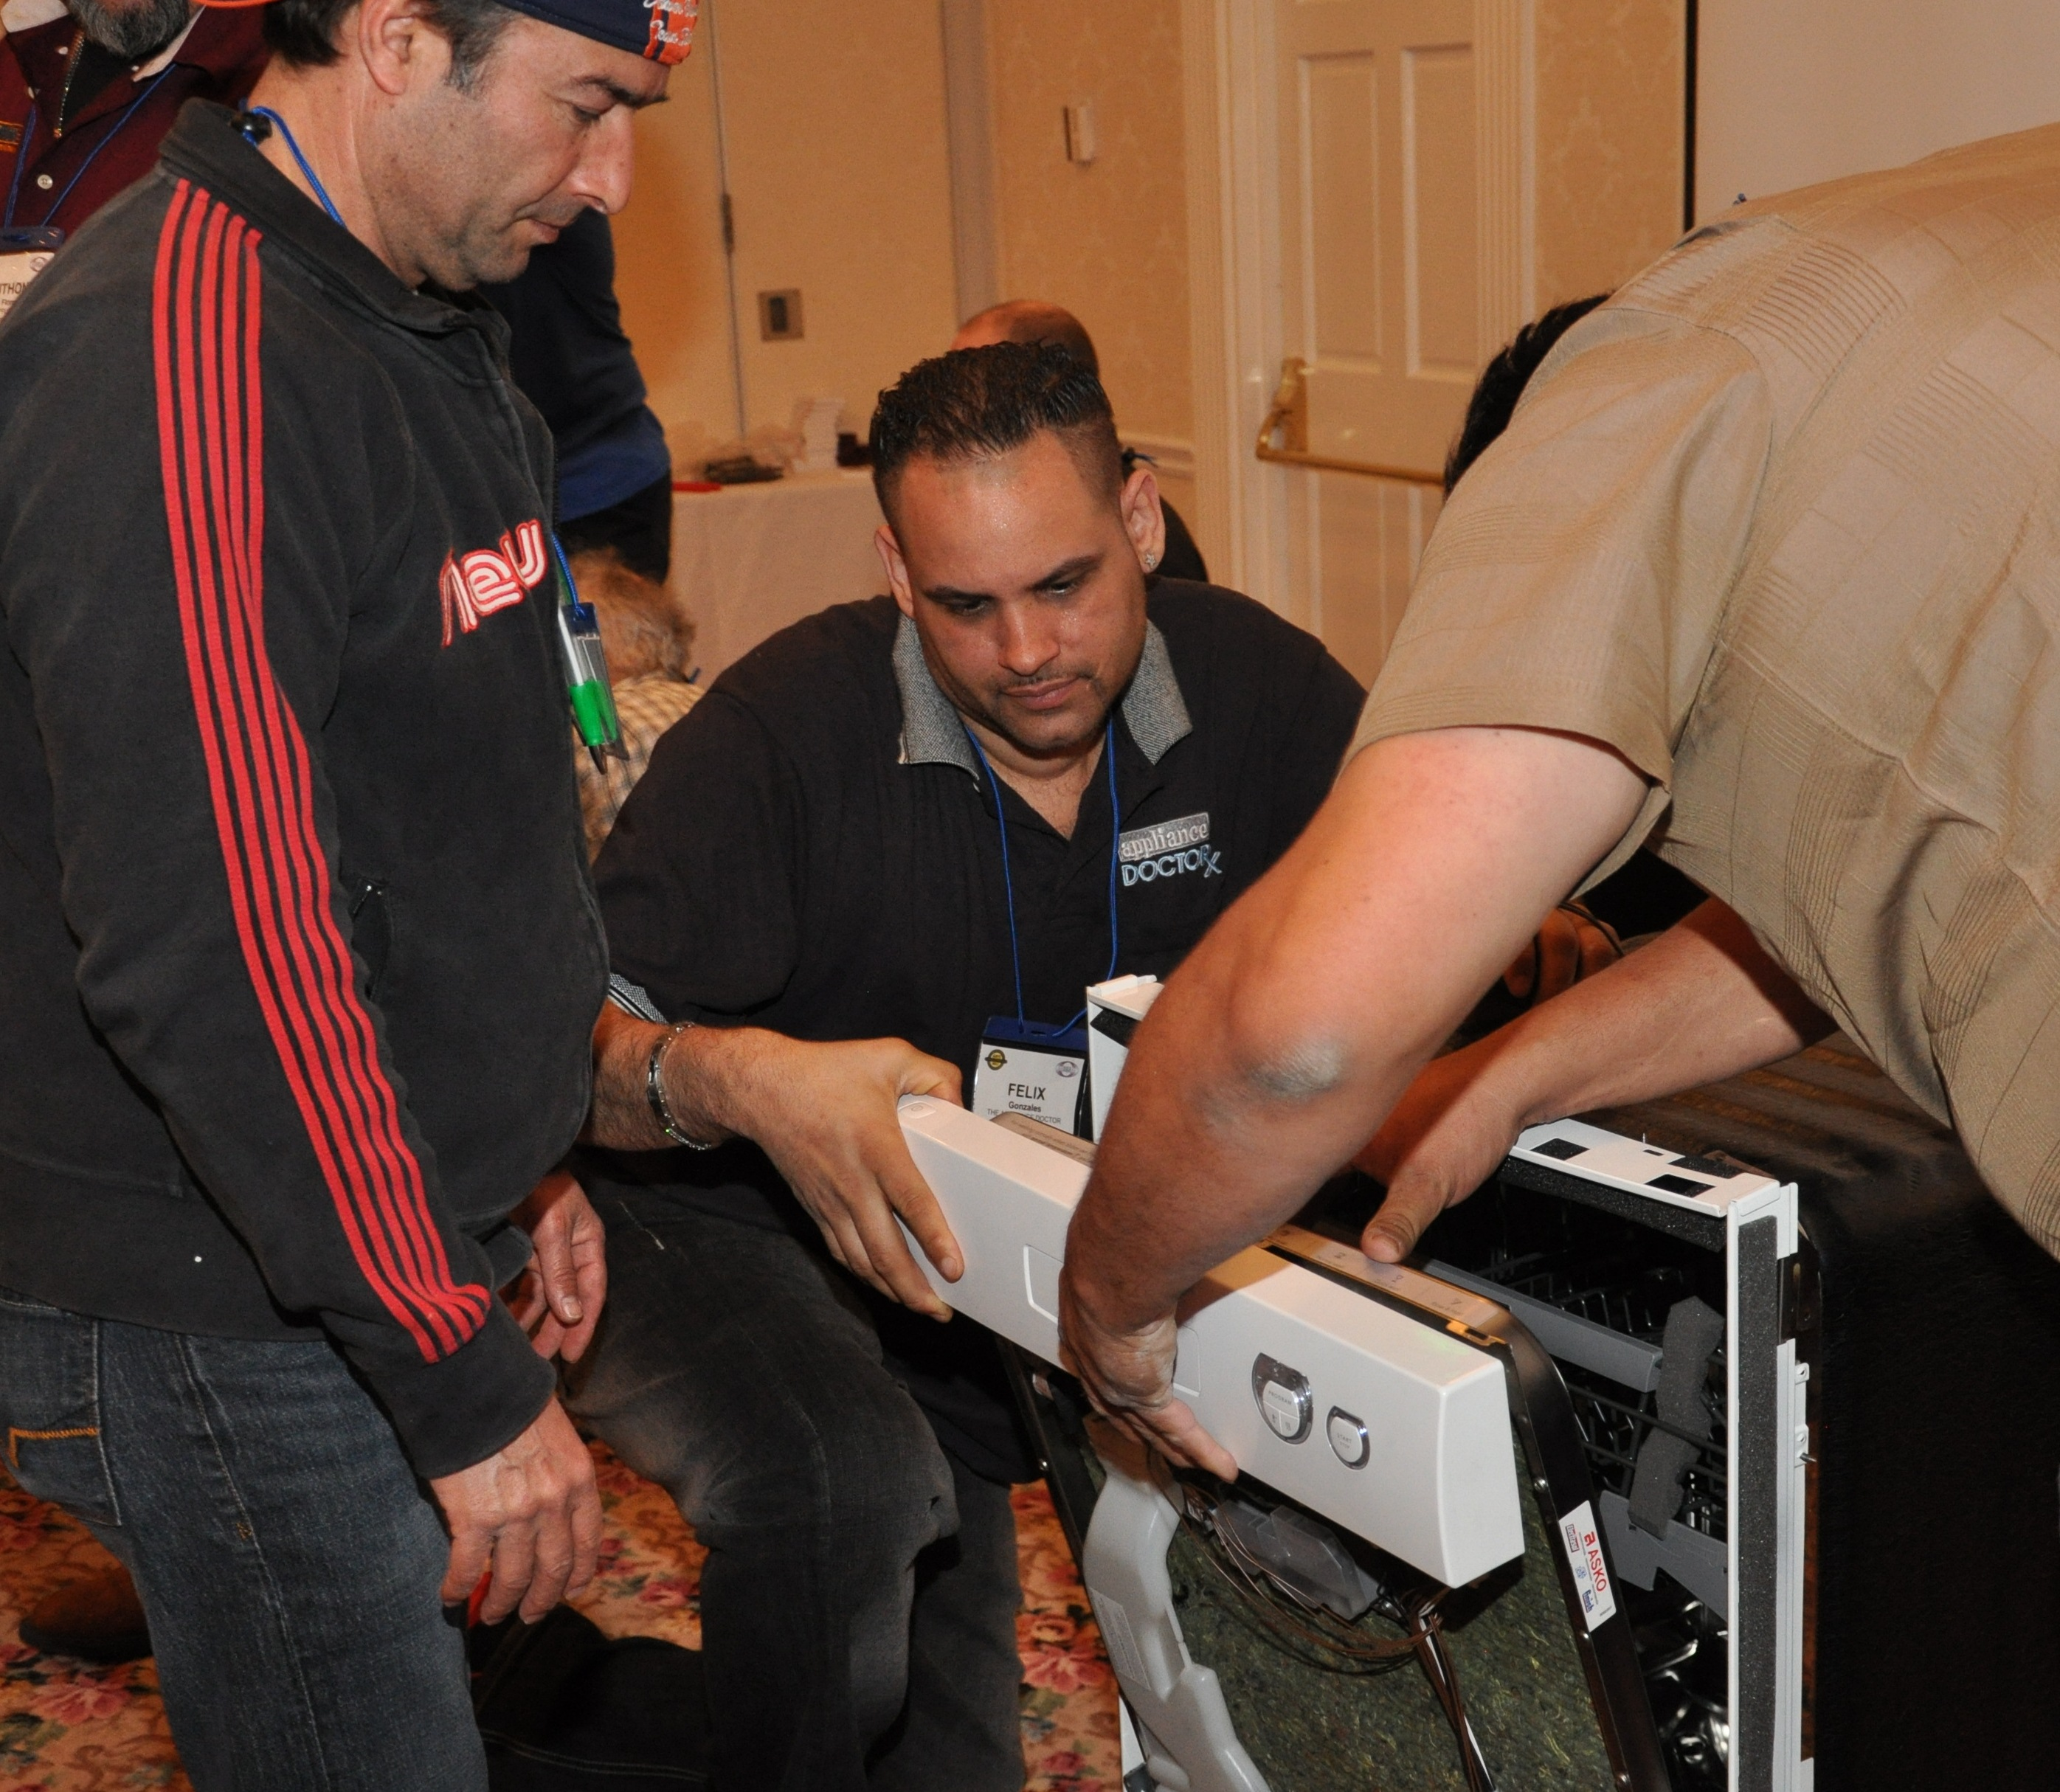 5 Reasons To Attend The Appliance Repair Training Workshop